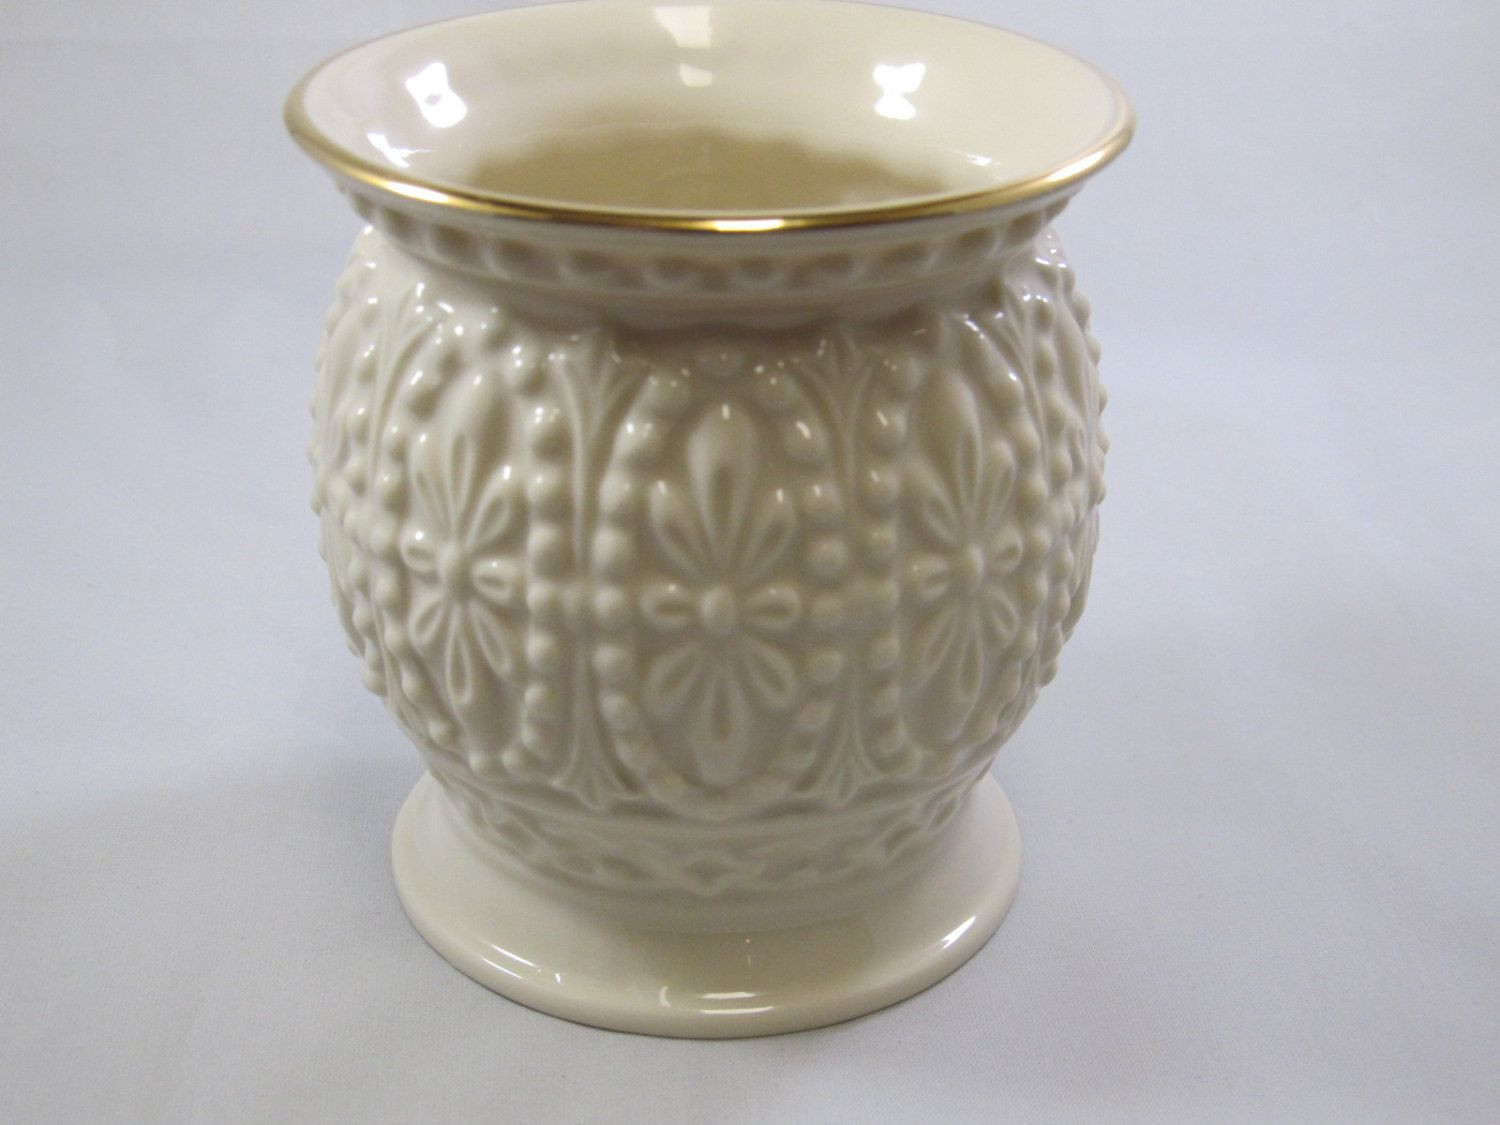 9 inch bud vase of lenox ivory porcelain vase 24k gold trim bud vase fine china with regard to lenox ivory porcelain vase 24k gold trim bud vase fine china small bud vase china vase bumpy details